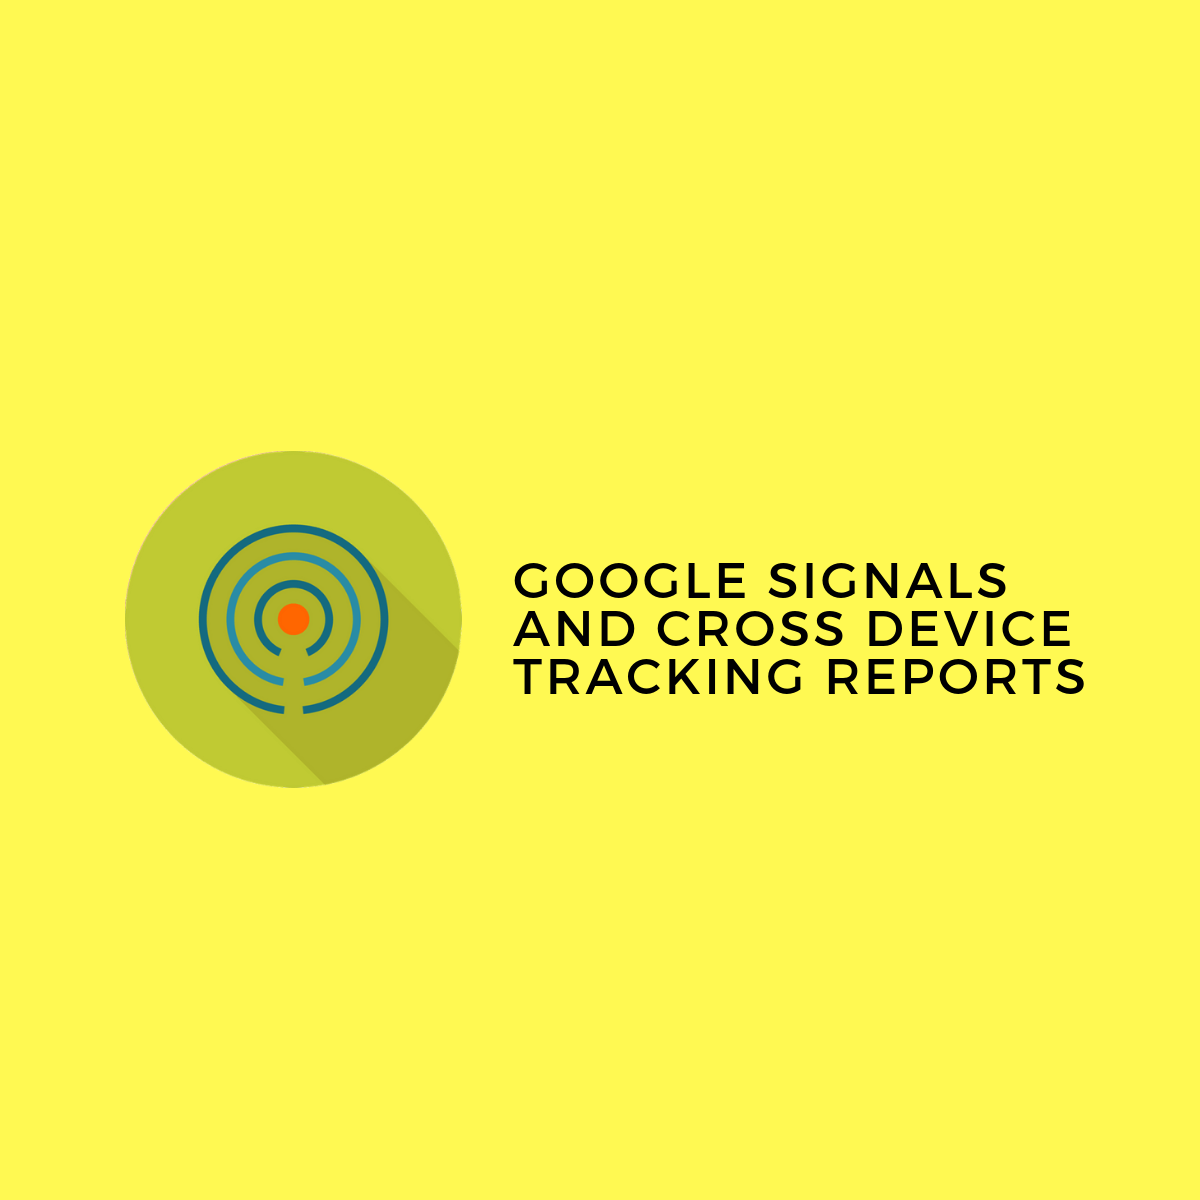 How to use Google Signals and the Cross Device Tracking